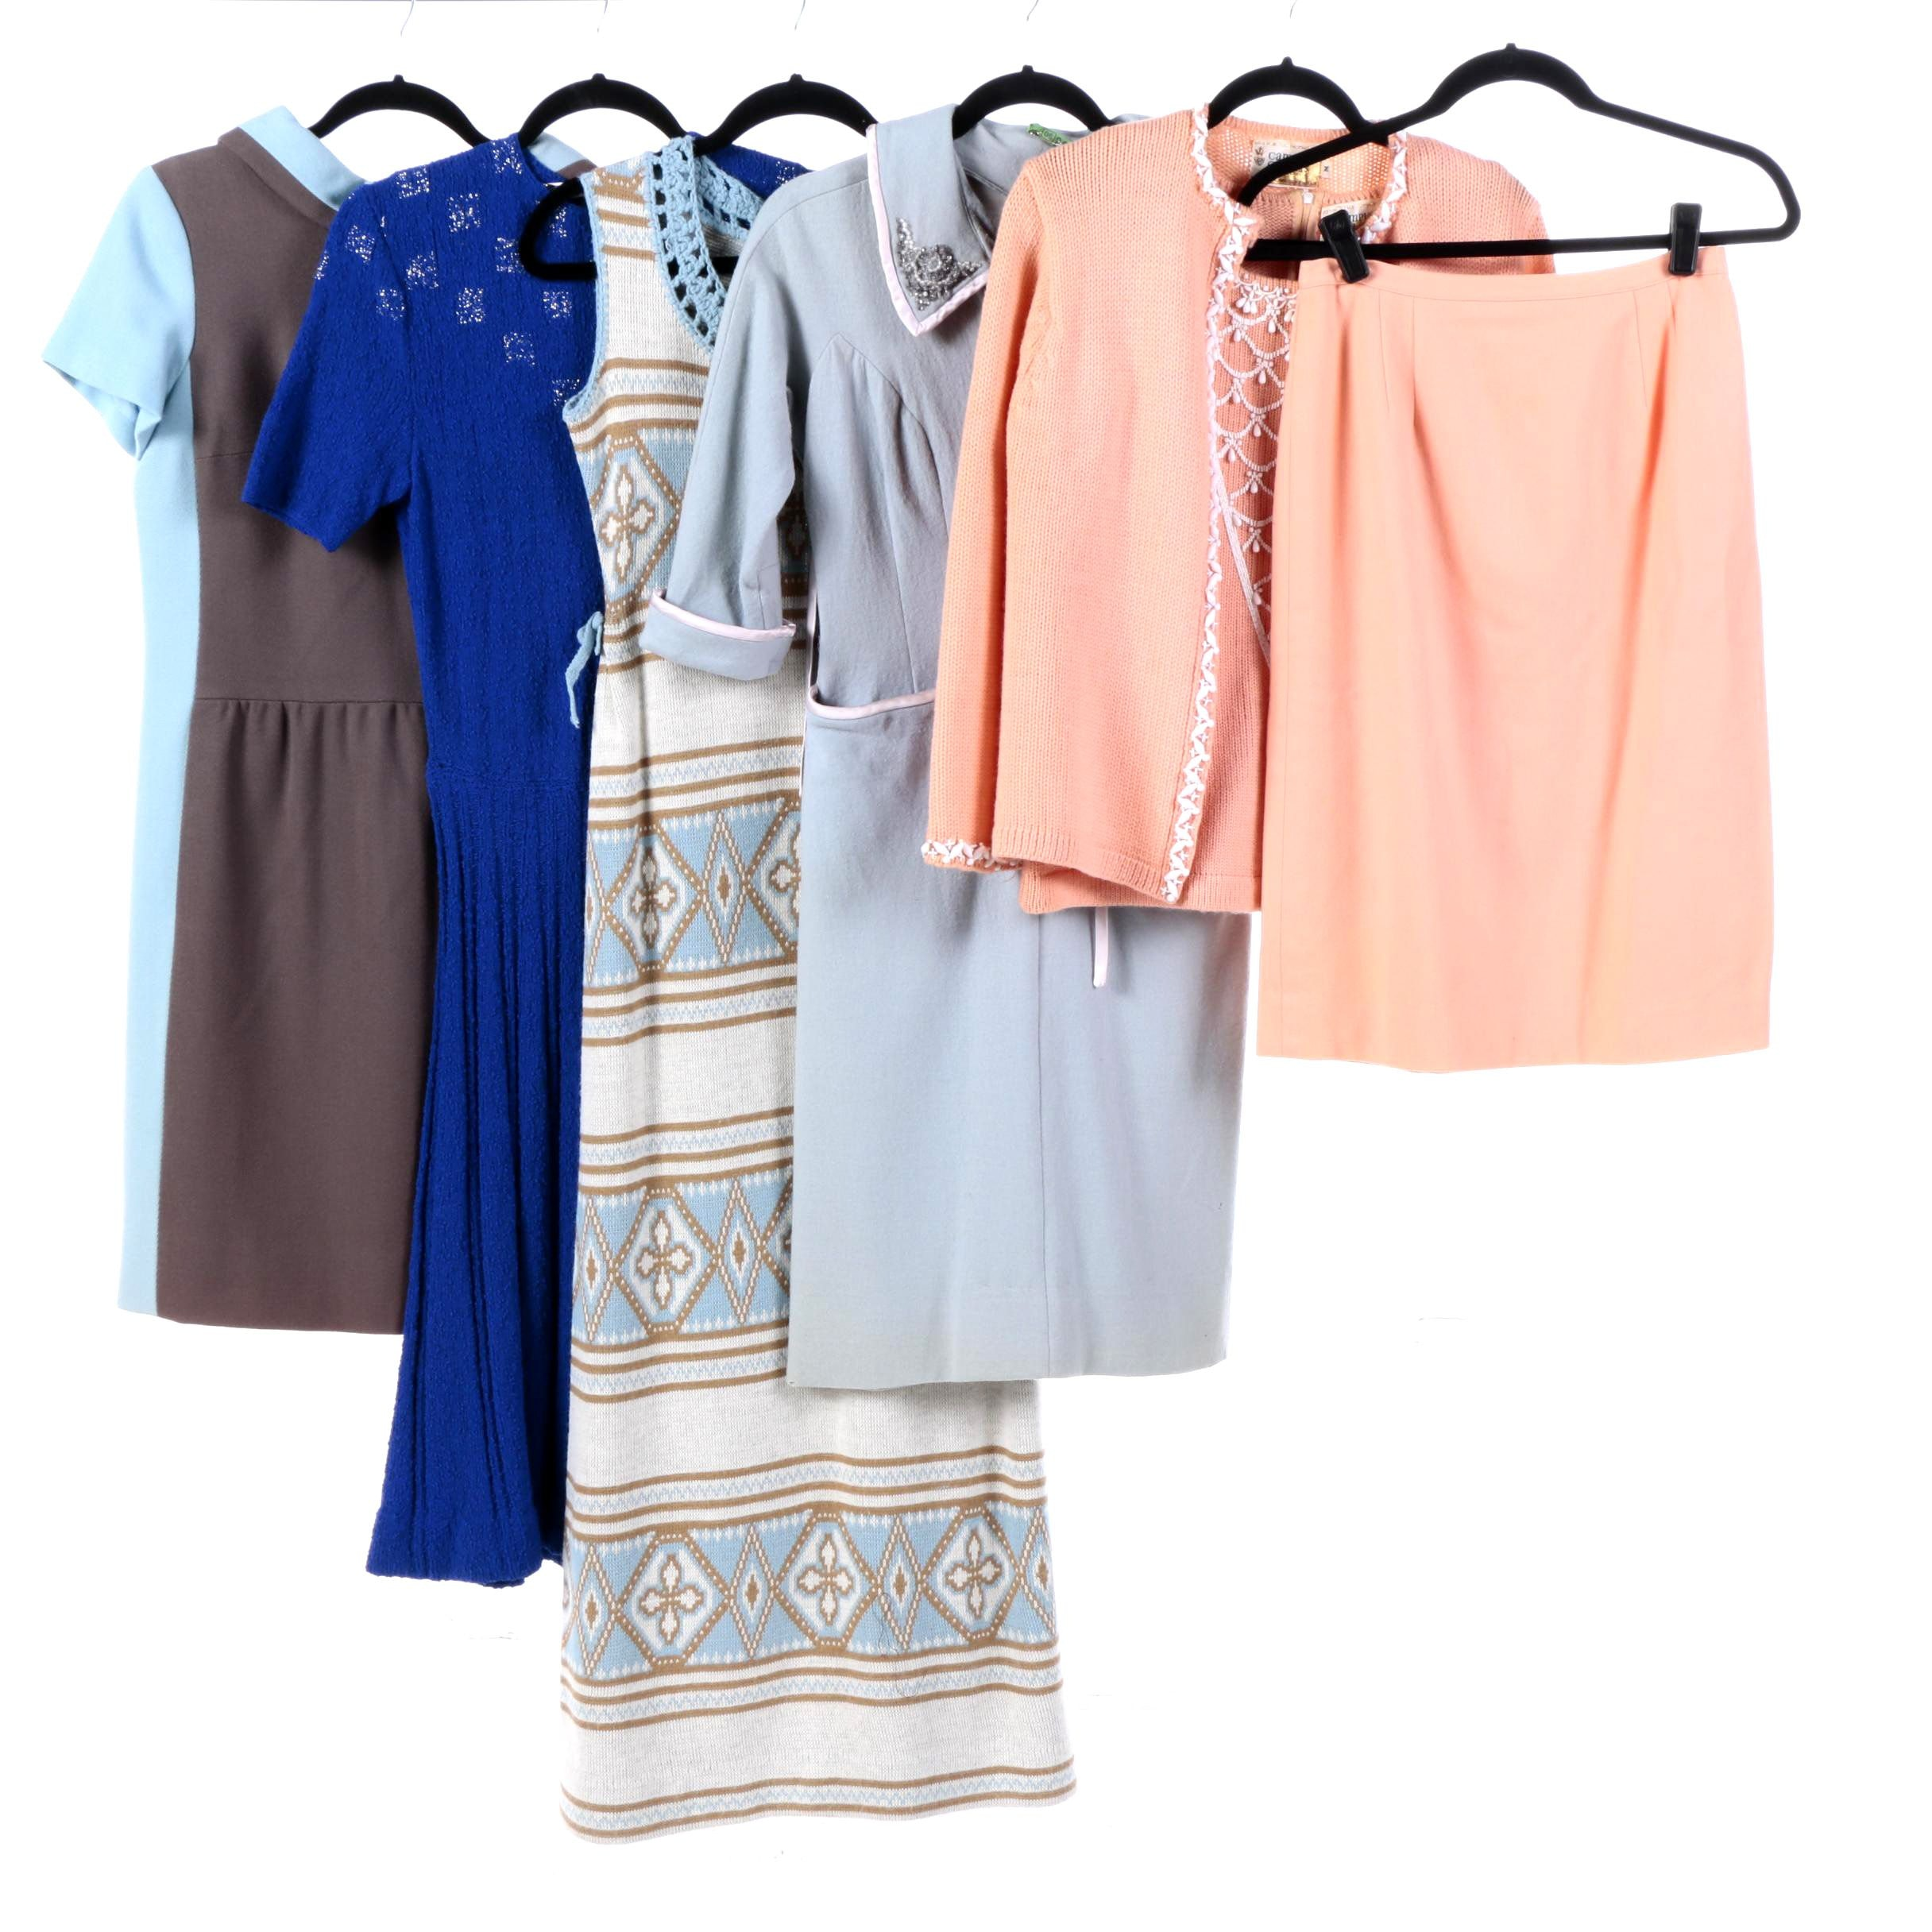 Women's Vintage Dresses Including Campus Casuals of California Coordinated Set